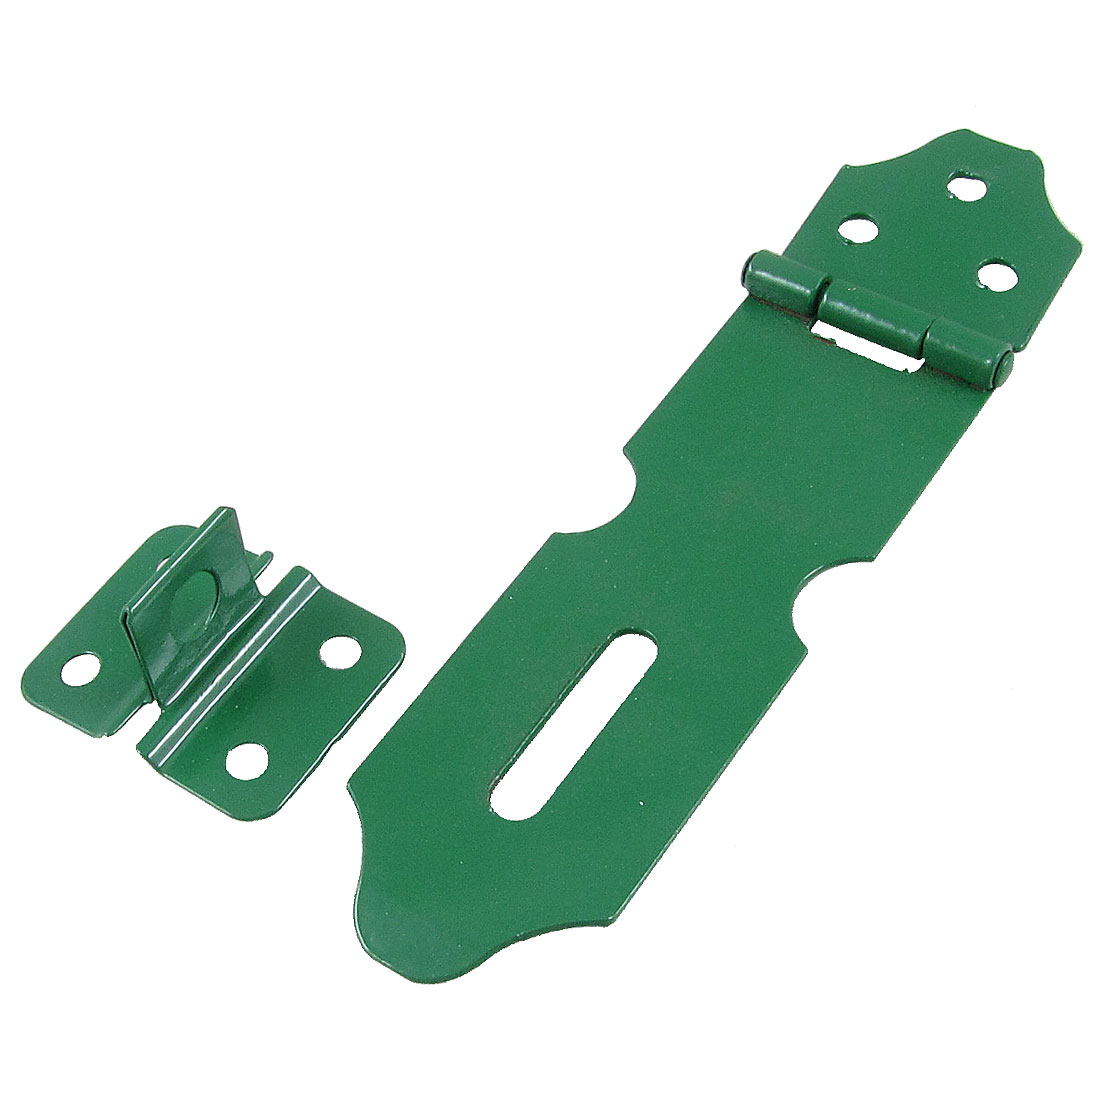 "Green Metal Staple 5"" Hasp Set for Drawer Cabinet Gate Doors"